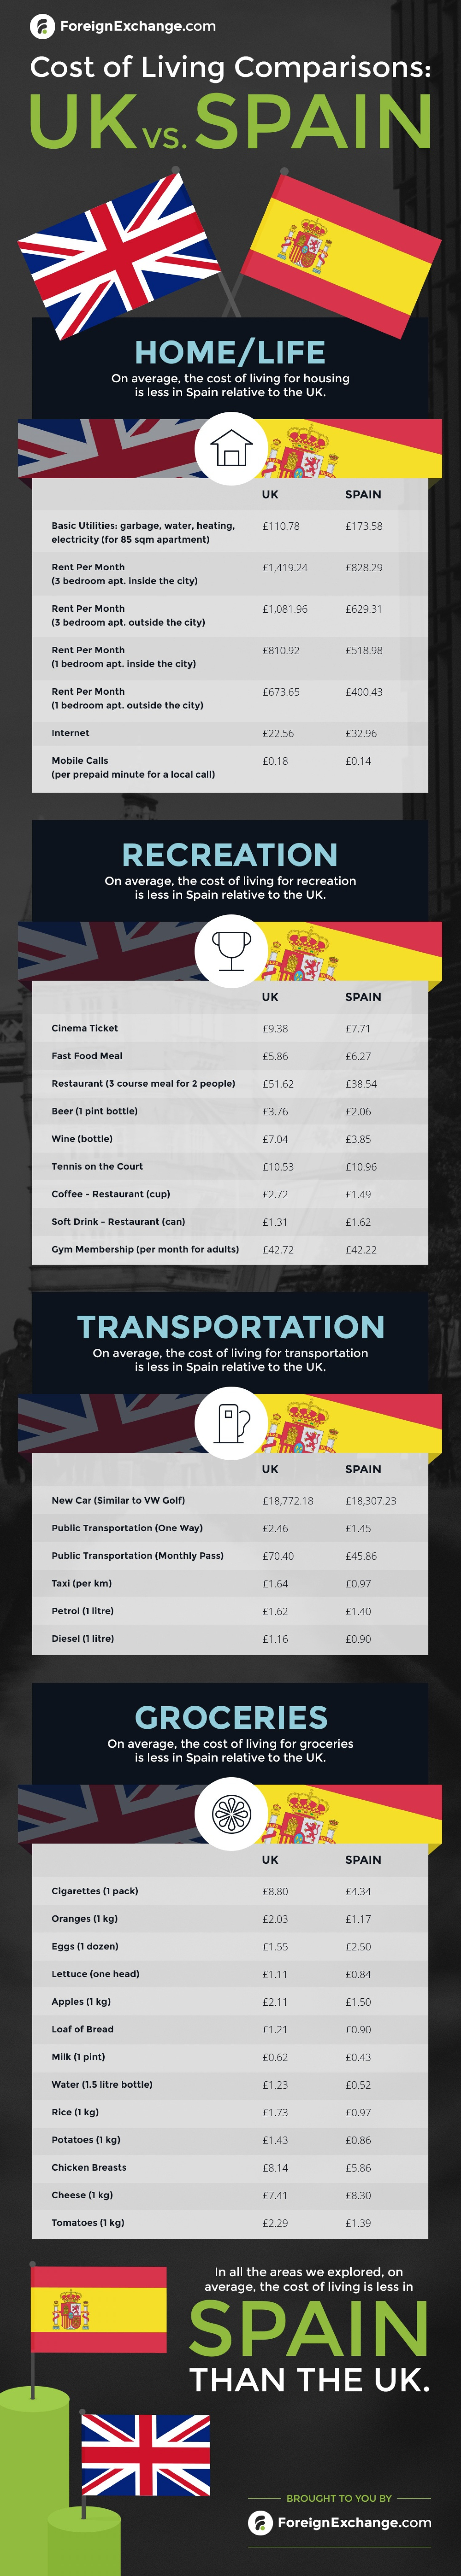 Cost of Living Comparisons: UK vs. Spain Infographic